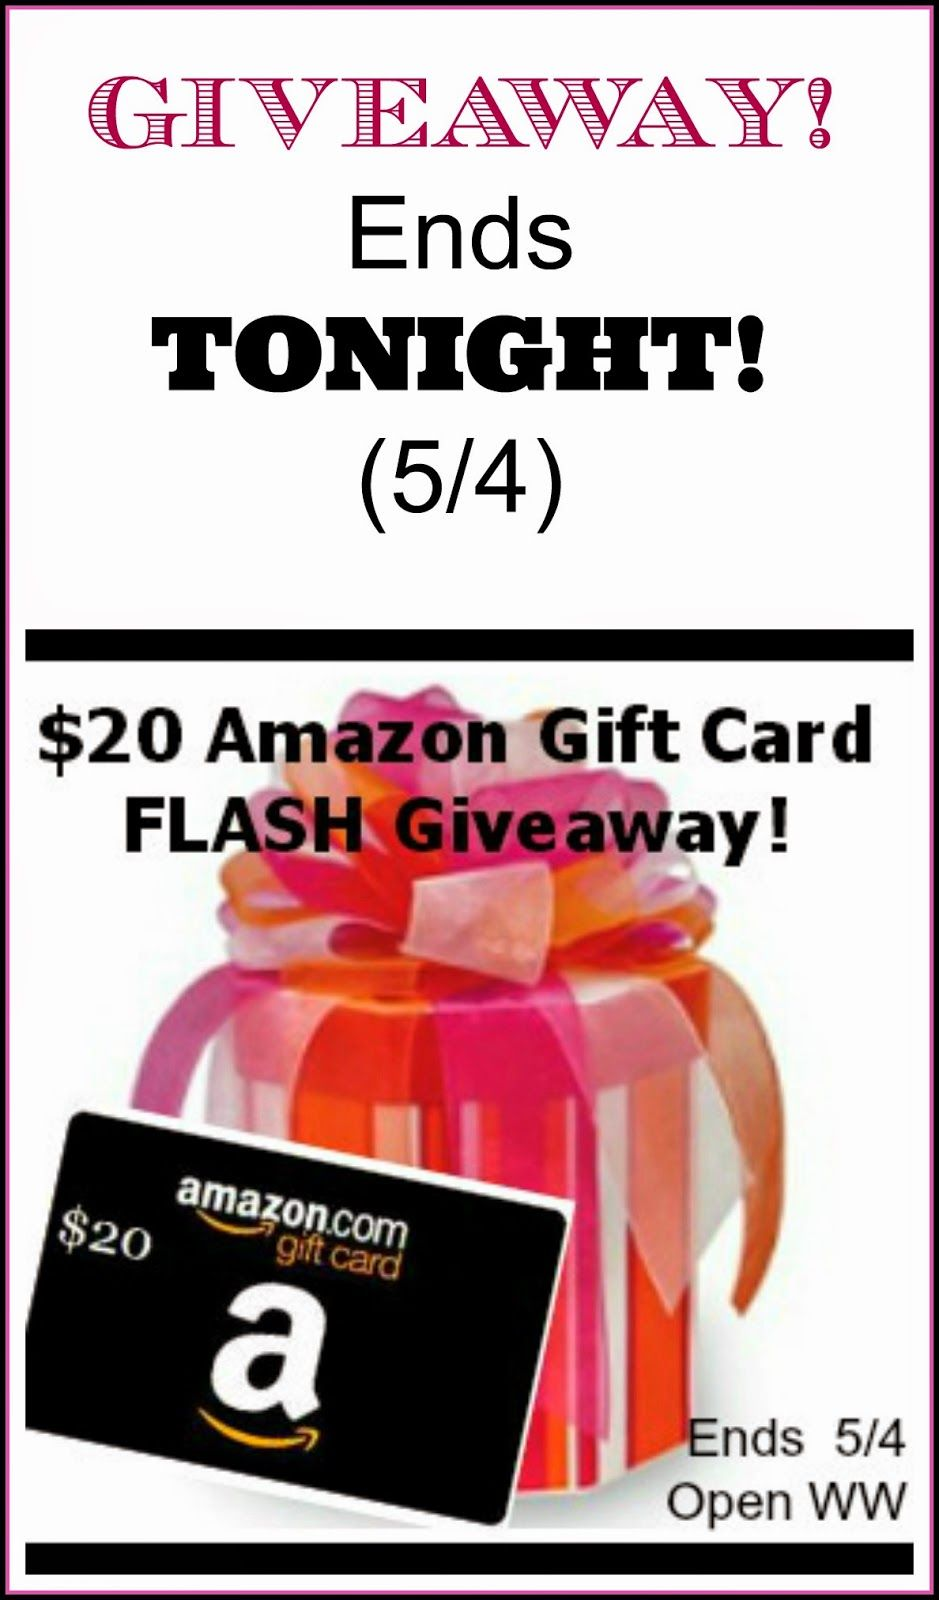 Style, Decor & More: $20 Amazon Gift Card FLASH Giveaway {Ends 5/4} *********** ENTER AT STYLEDECOR HERE: http://www.styledecordeals.com/2014/05/20-amazon-gift-card-flash-giveaway-ends.html